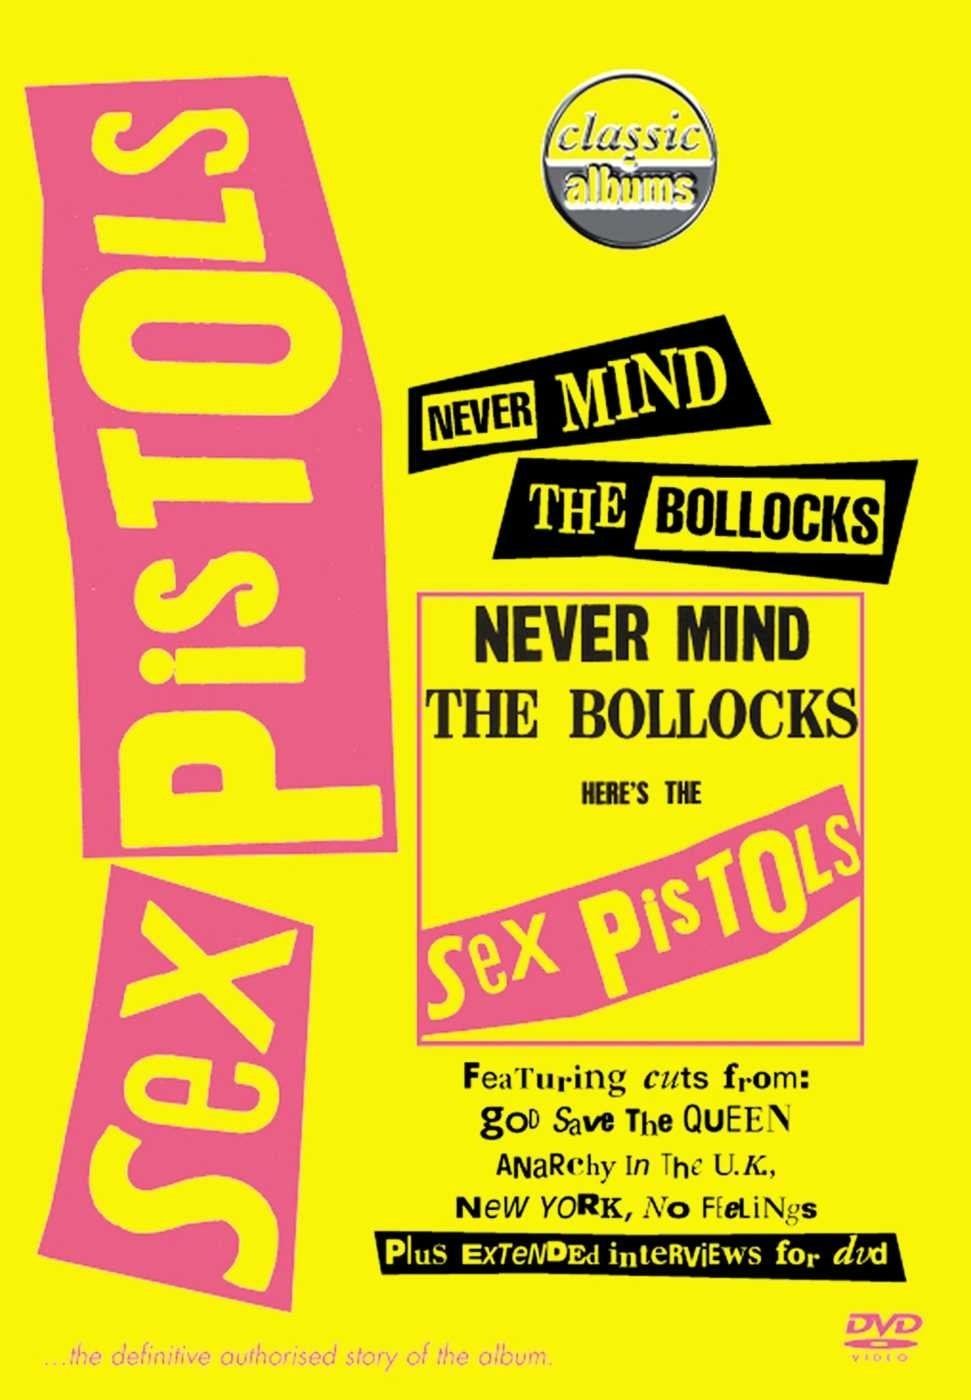 Classic Albums : Sex Pistols - Never Mind The Bollocks, Here's The Sex Pistols